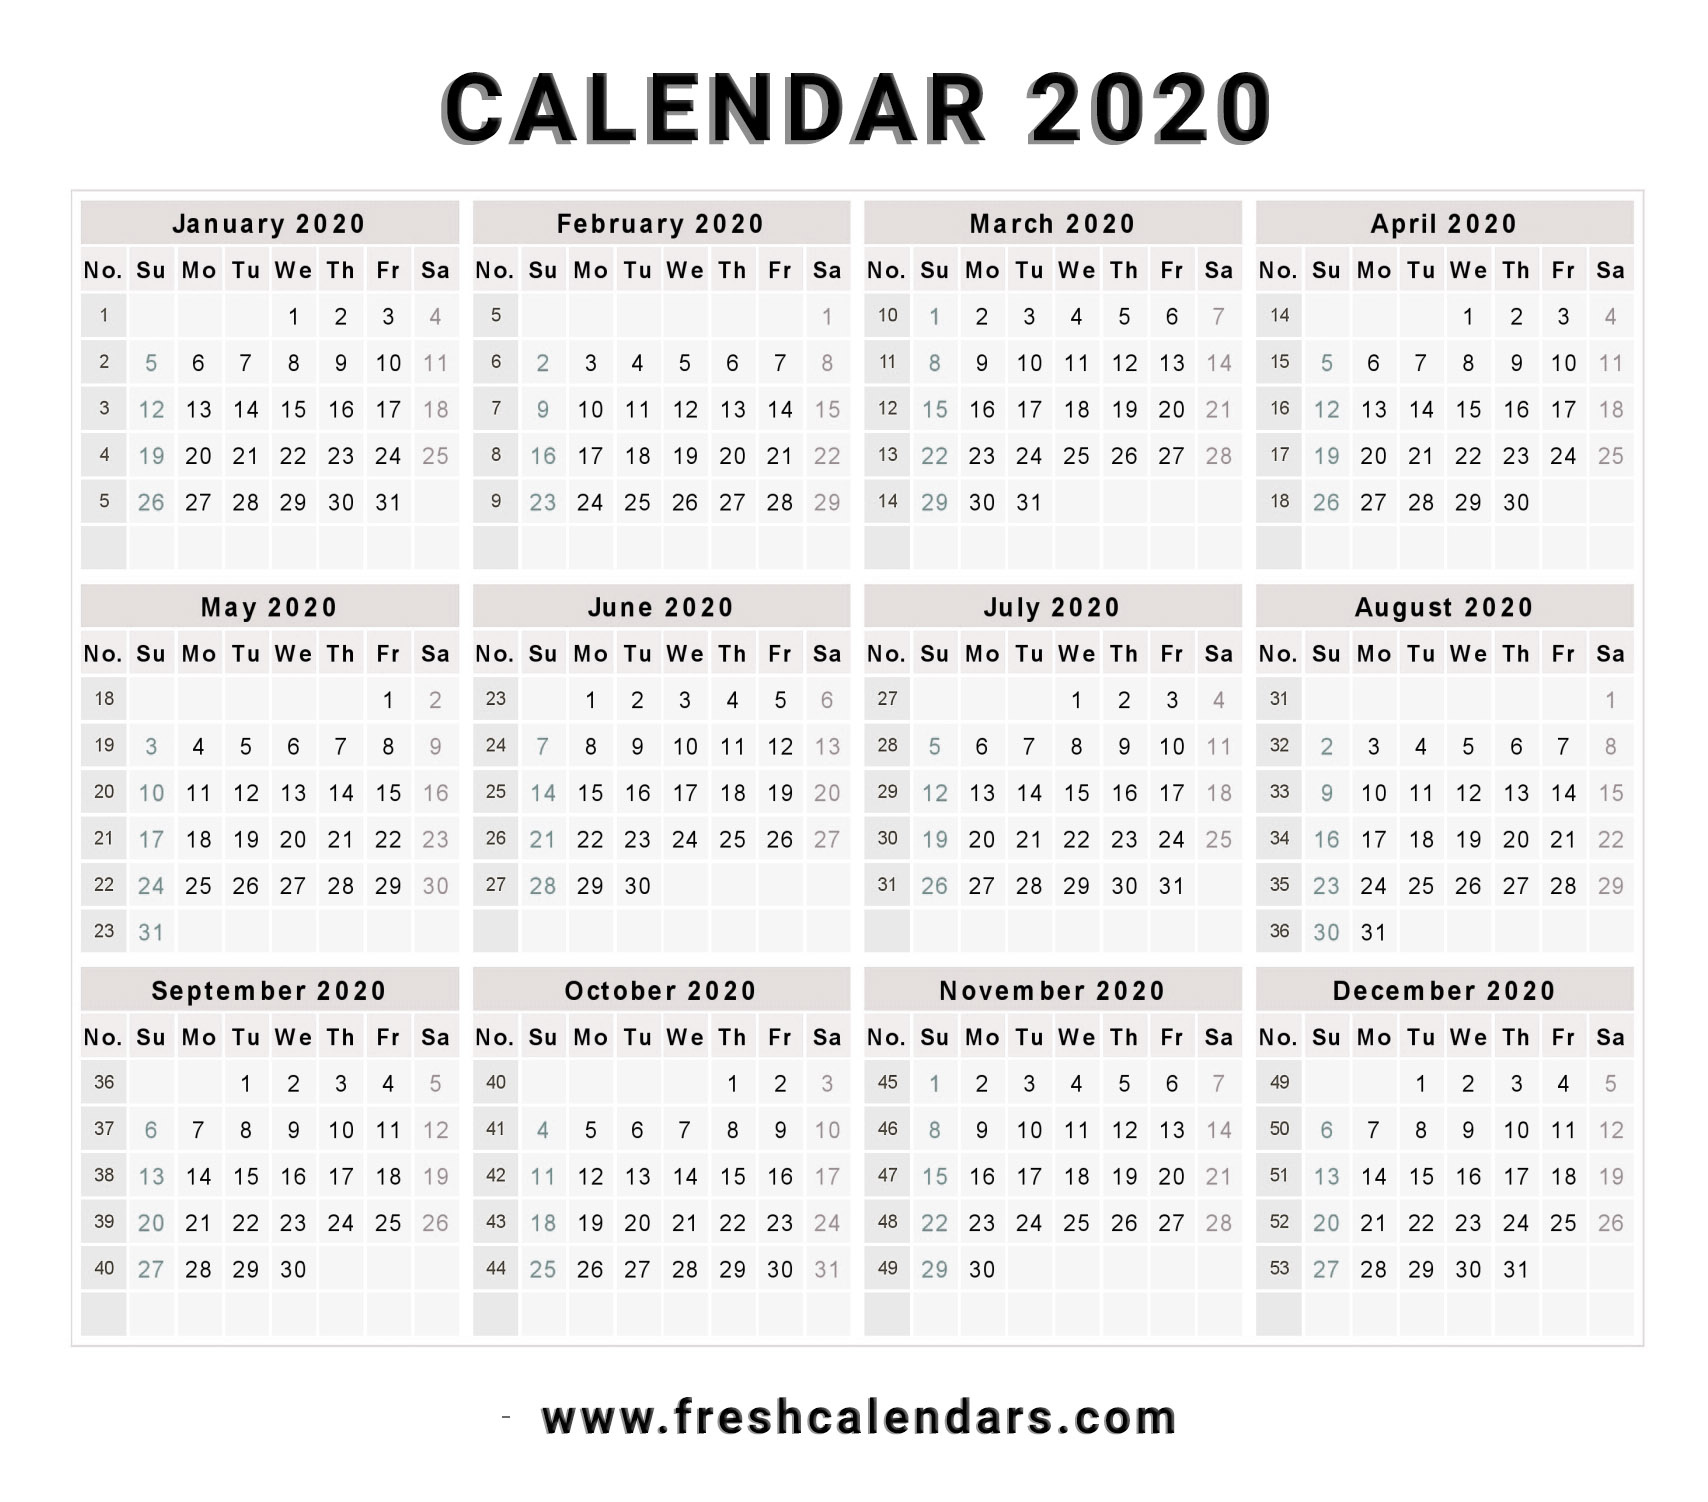 2020 Calendar throughout Printable Calendar 2020 That You Can Type In